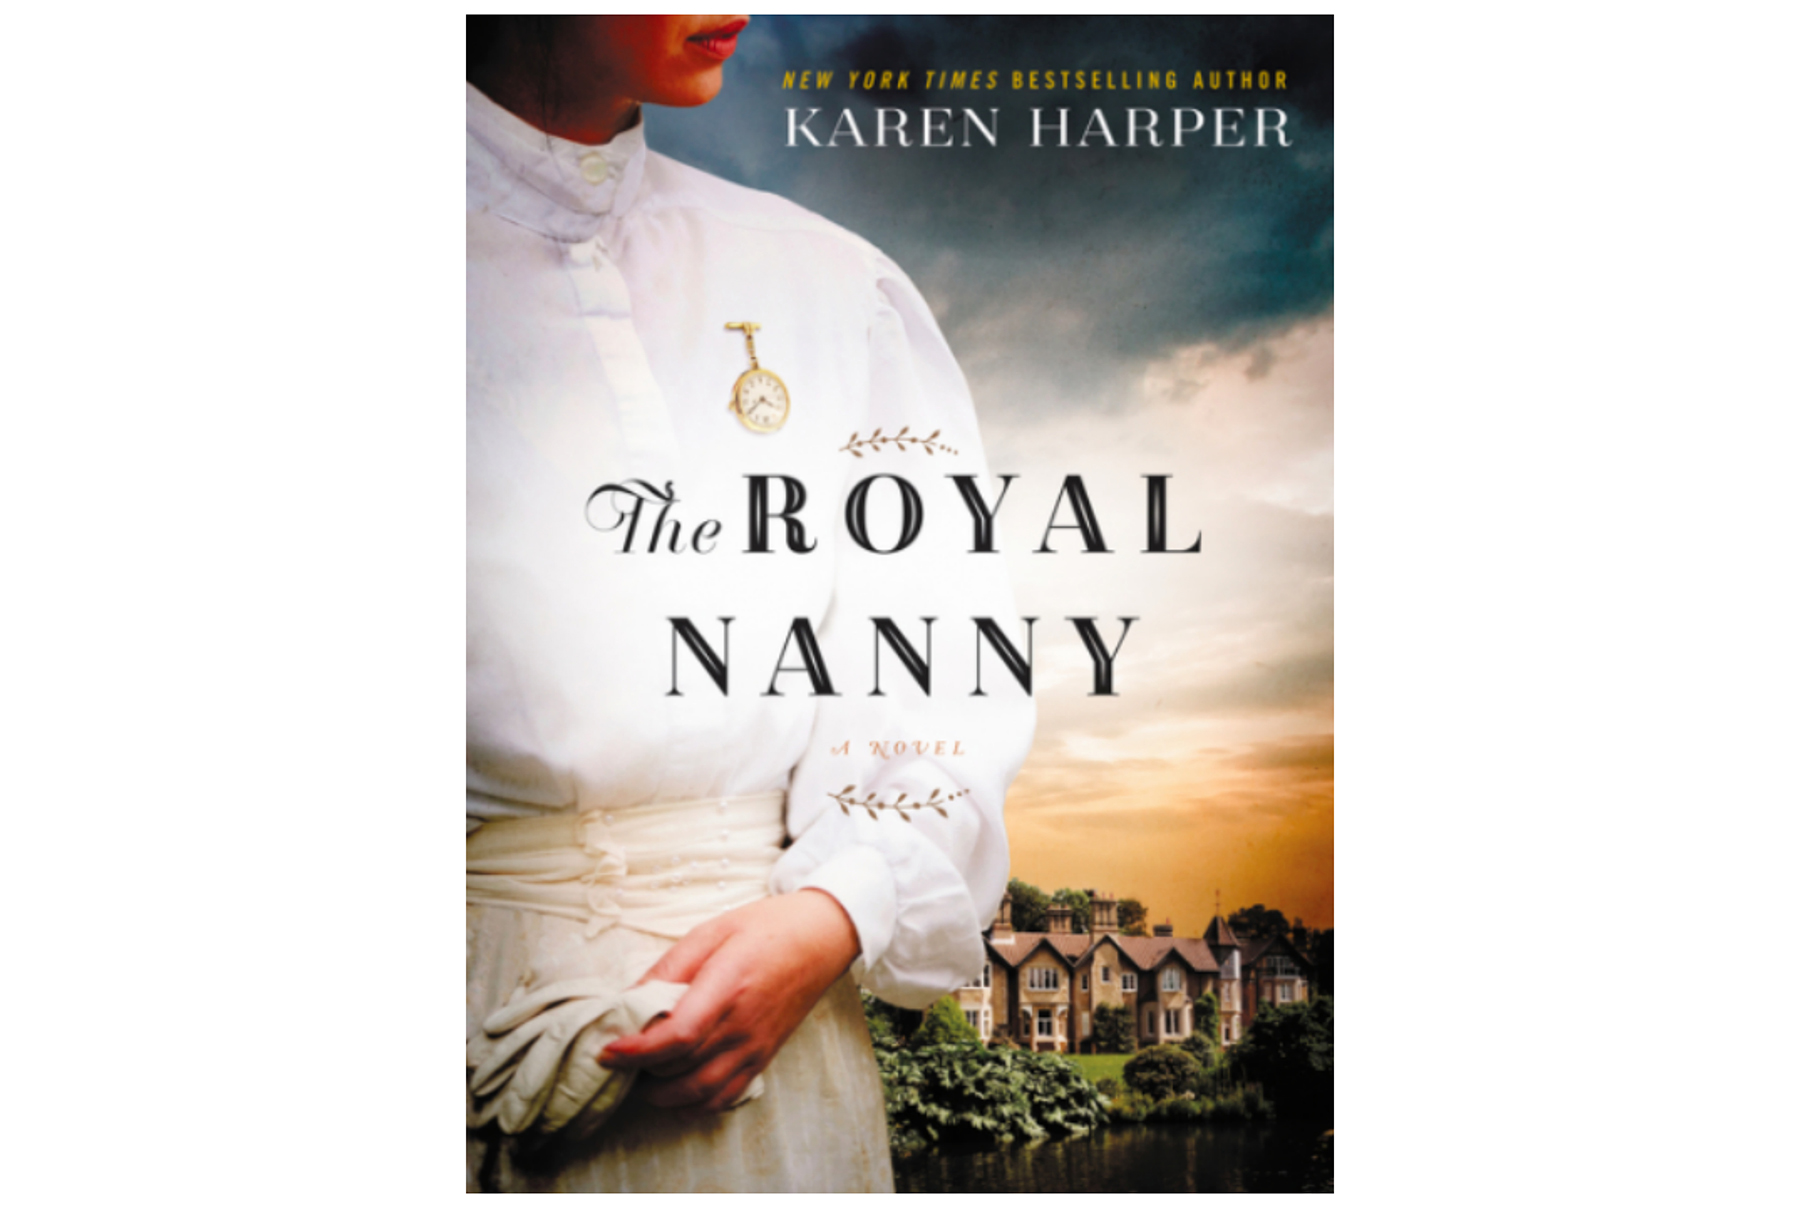 The Royal Nanny, by Karen Harper